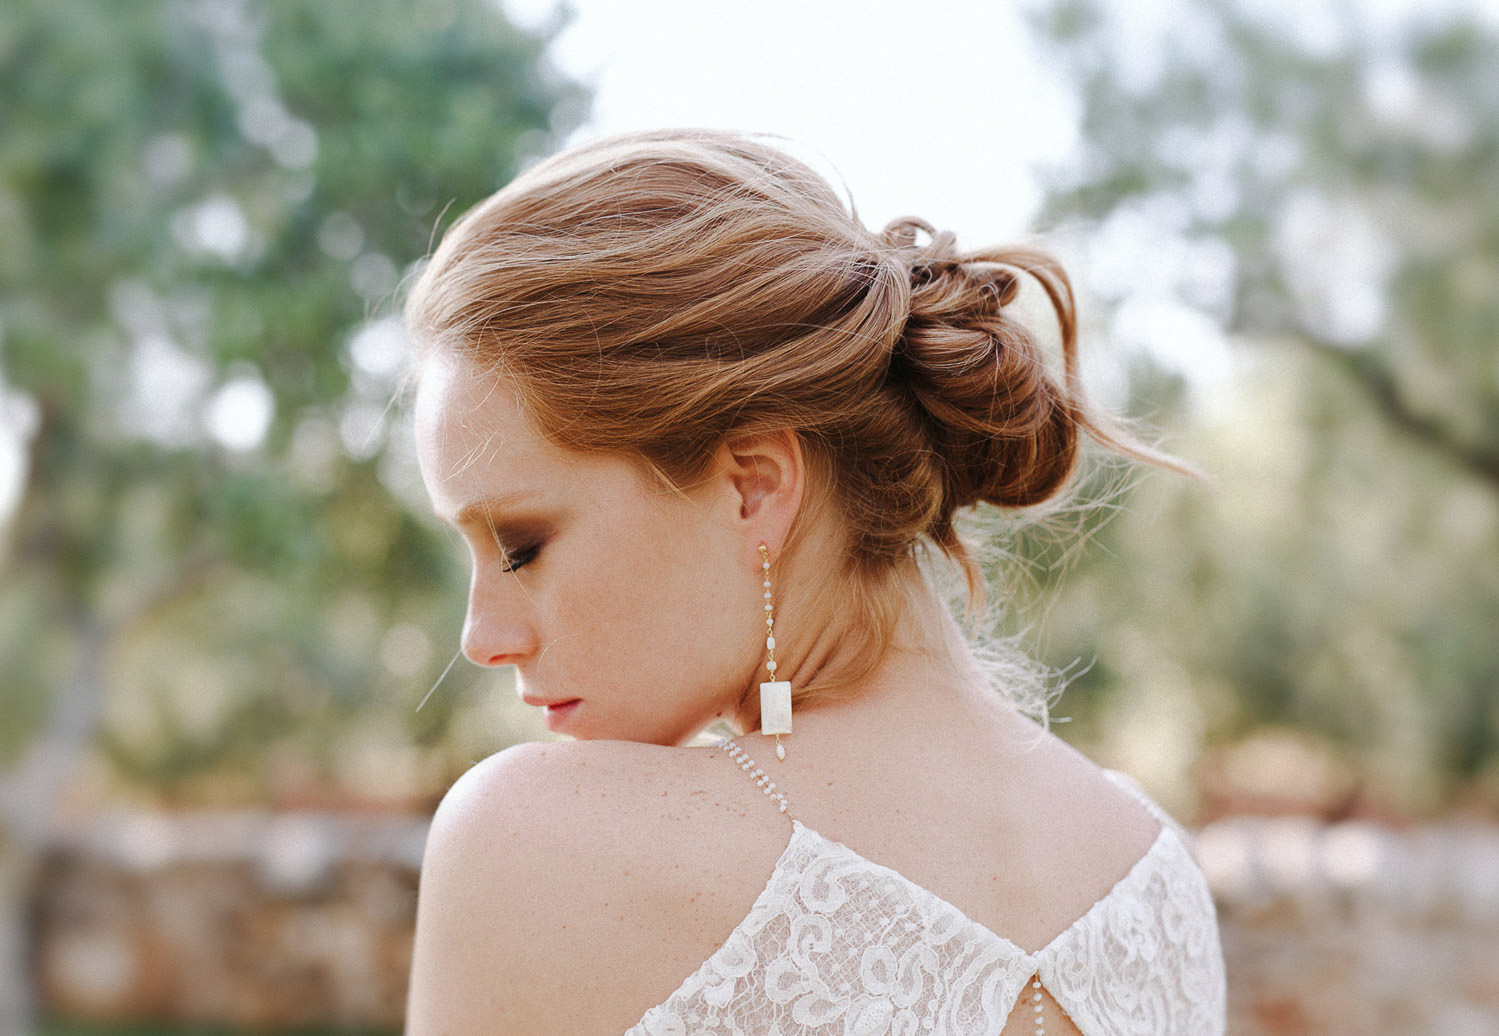 Ethereal bride with romantic updo hairstyle - Photo: Camilla Anchisi